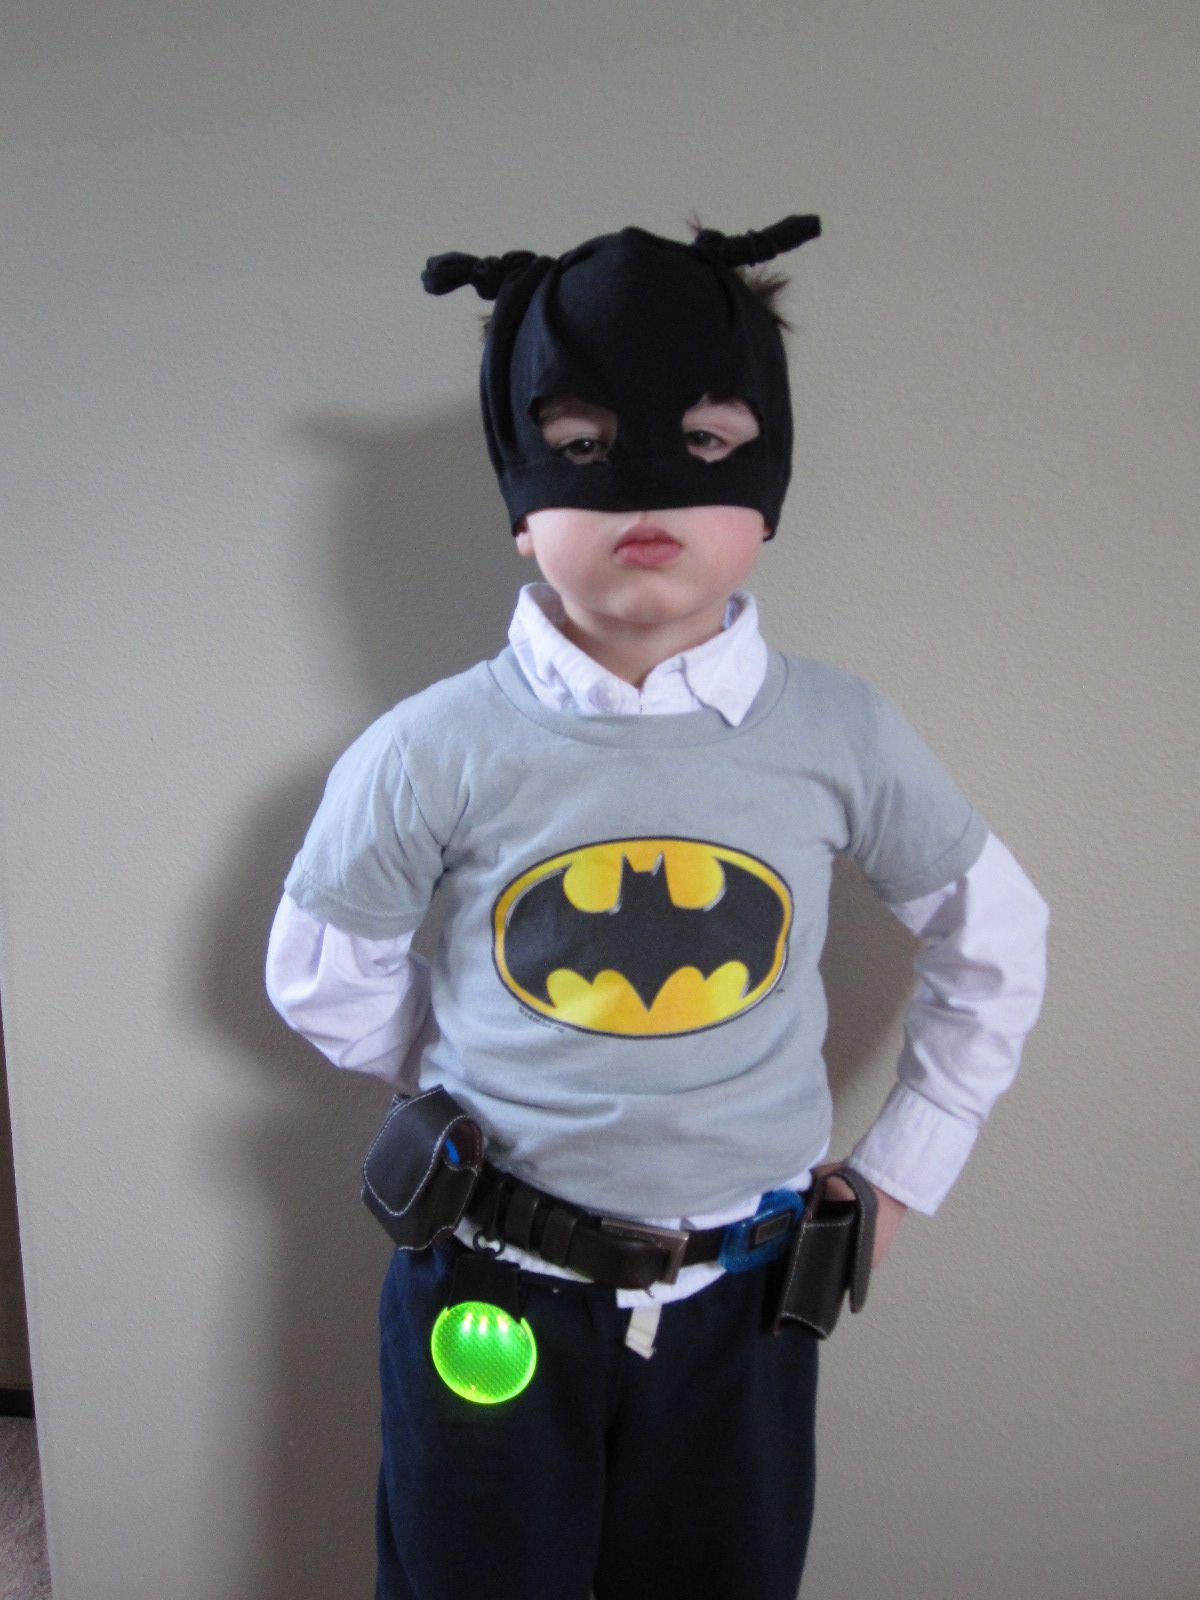 DIY Batman Belt and Mask & DIY Batman Belt and Mask - No Time For Flash Cards